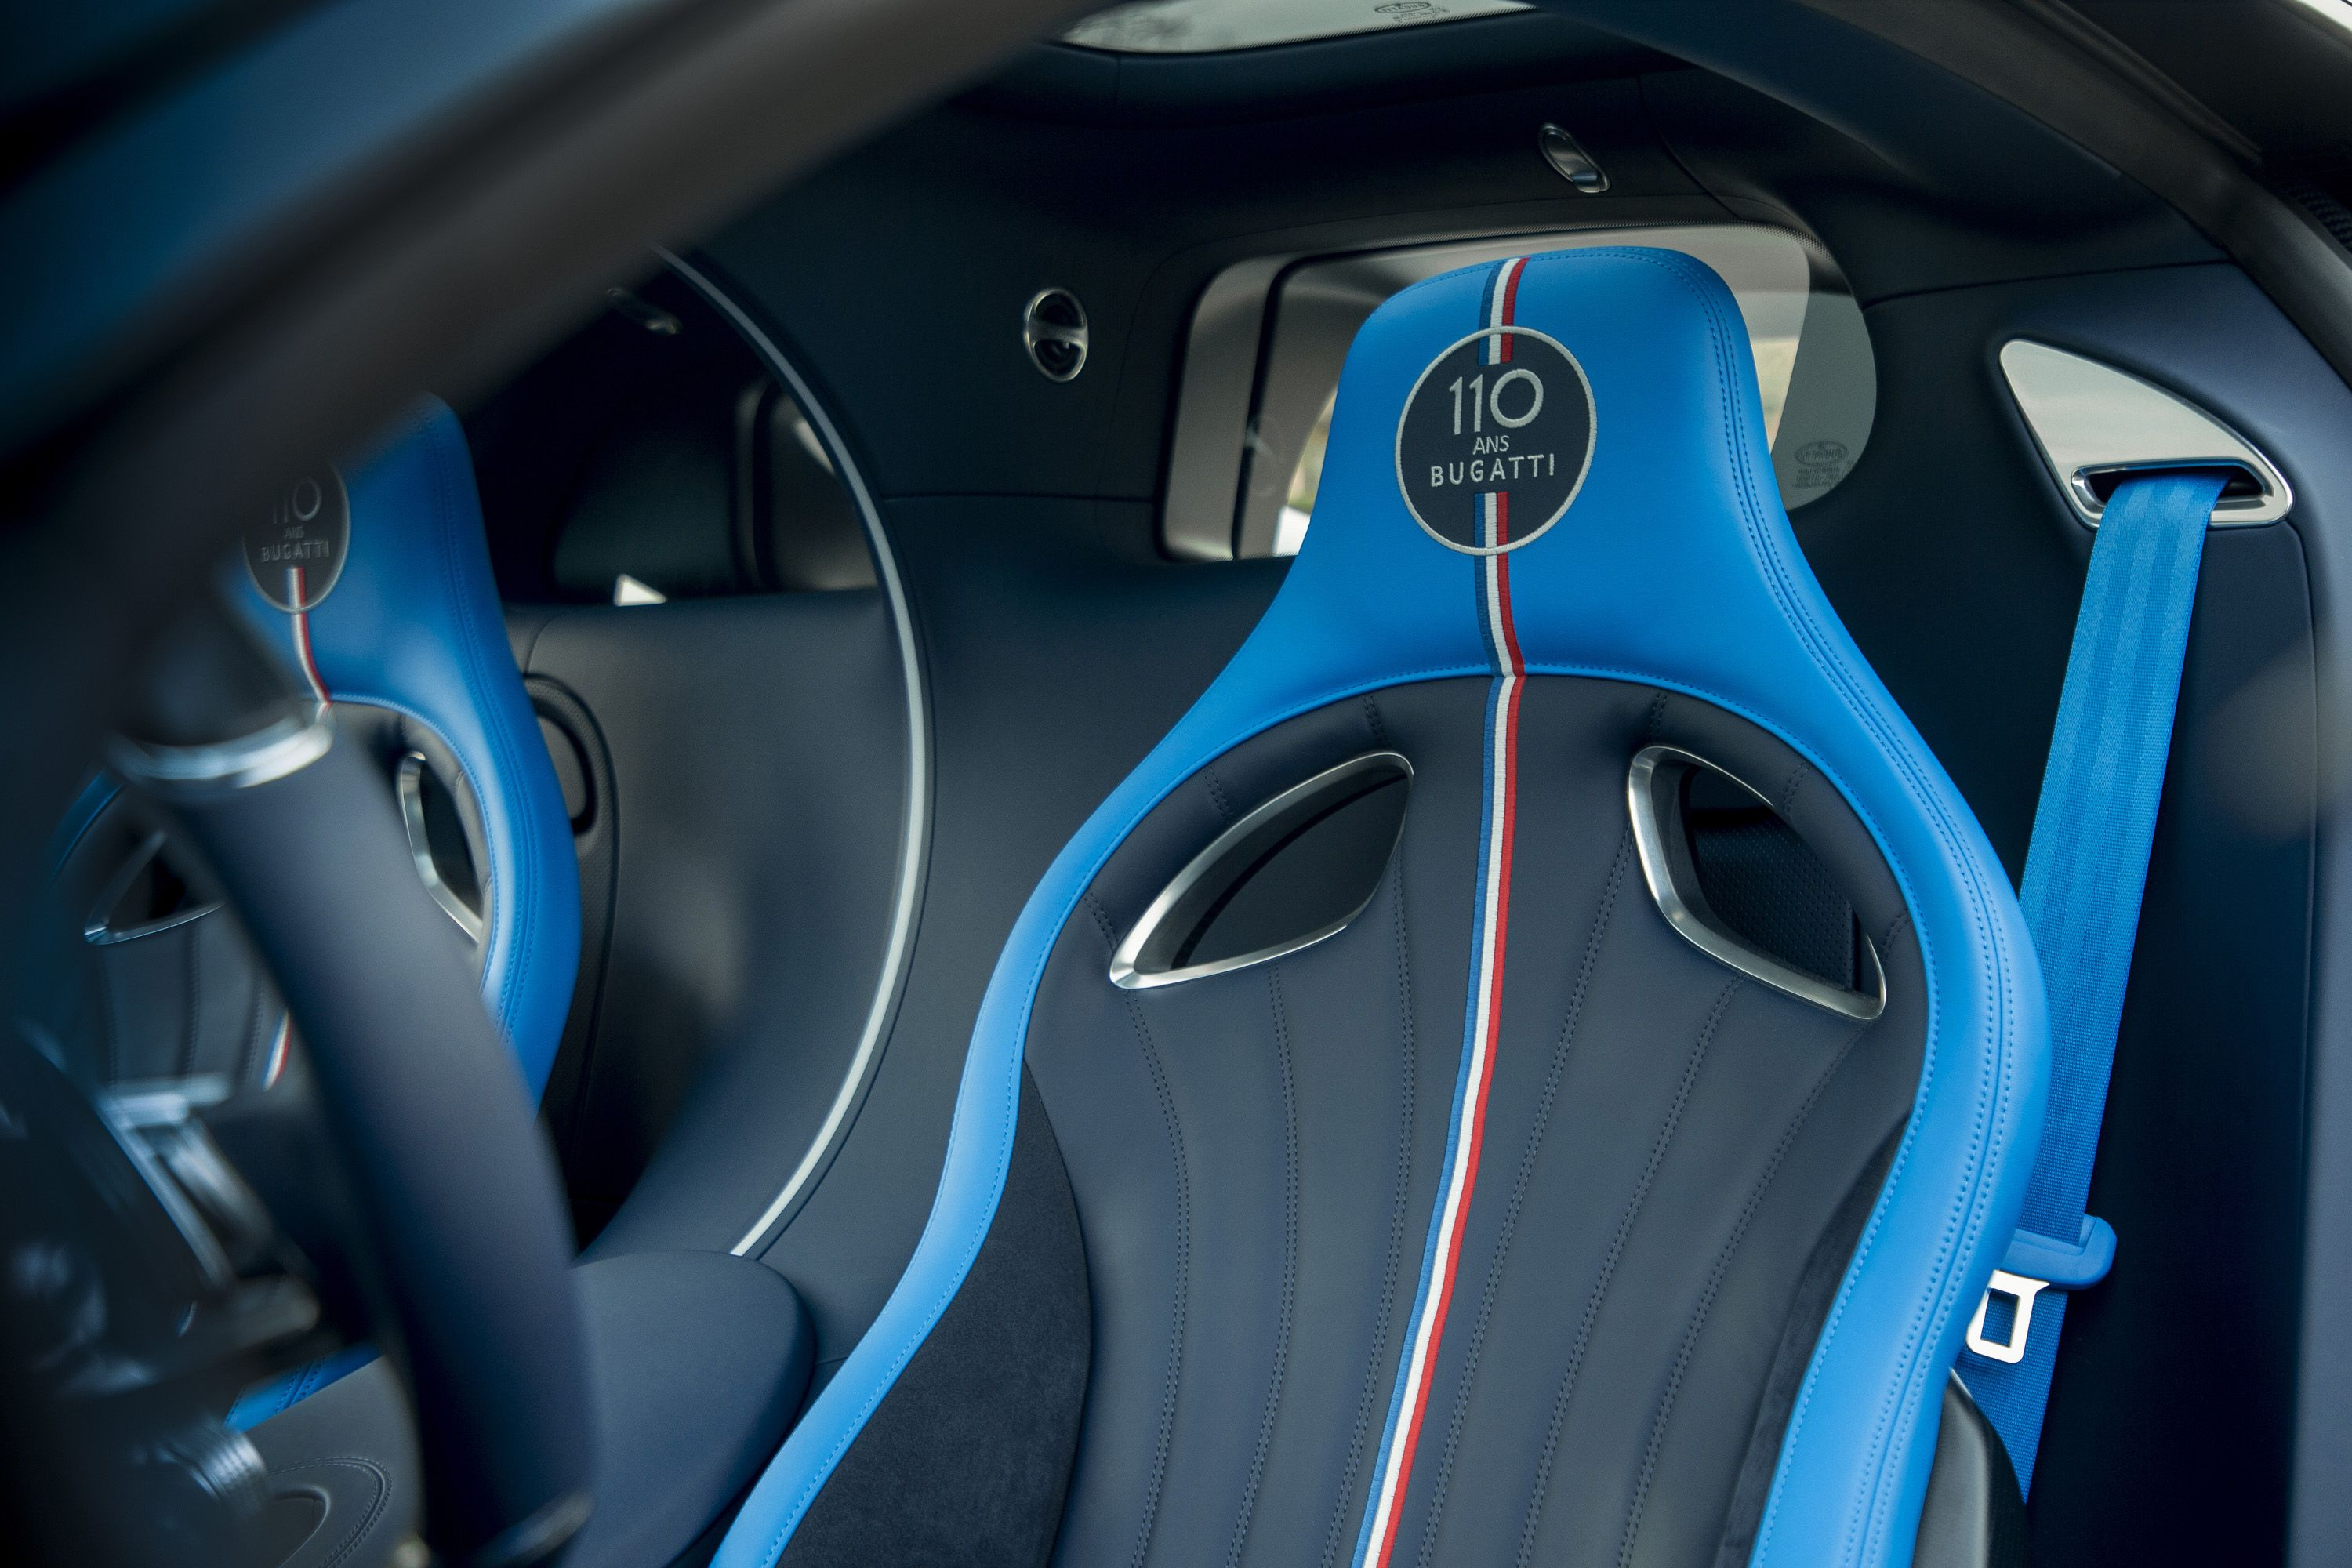 2019 Bugatti Chiron Sport 110 ans Bugatti Interior Front Seats Wallpapers (11)